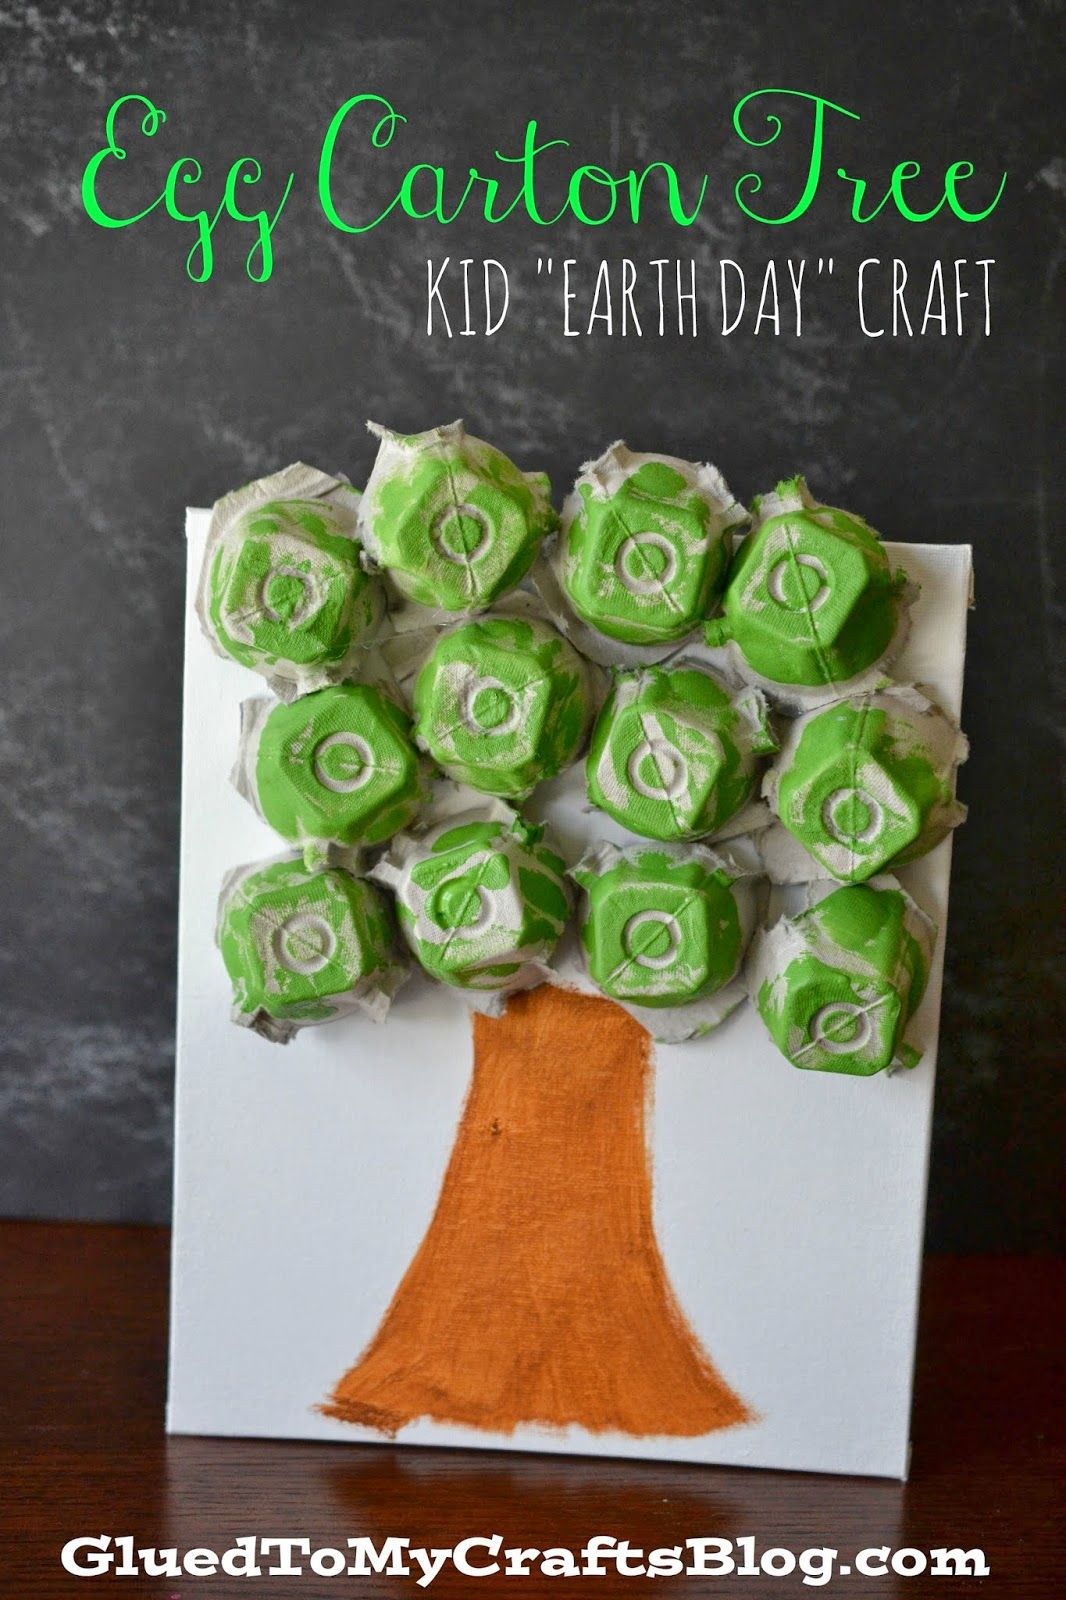 Glued to my Crafts: Egg Carton Tree {Kid's Earth Day Craft}